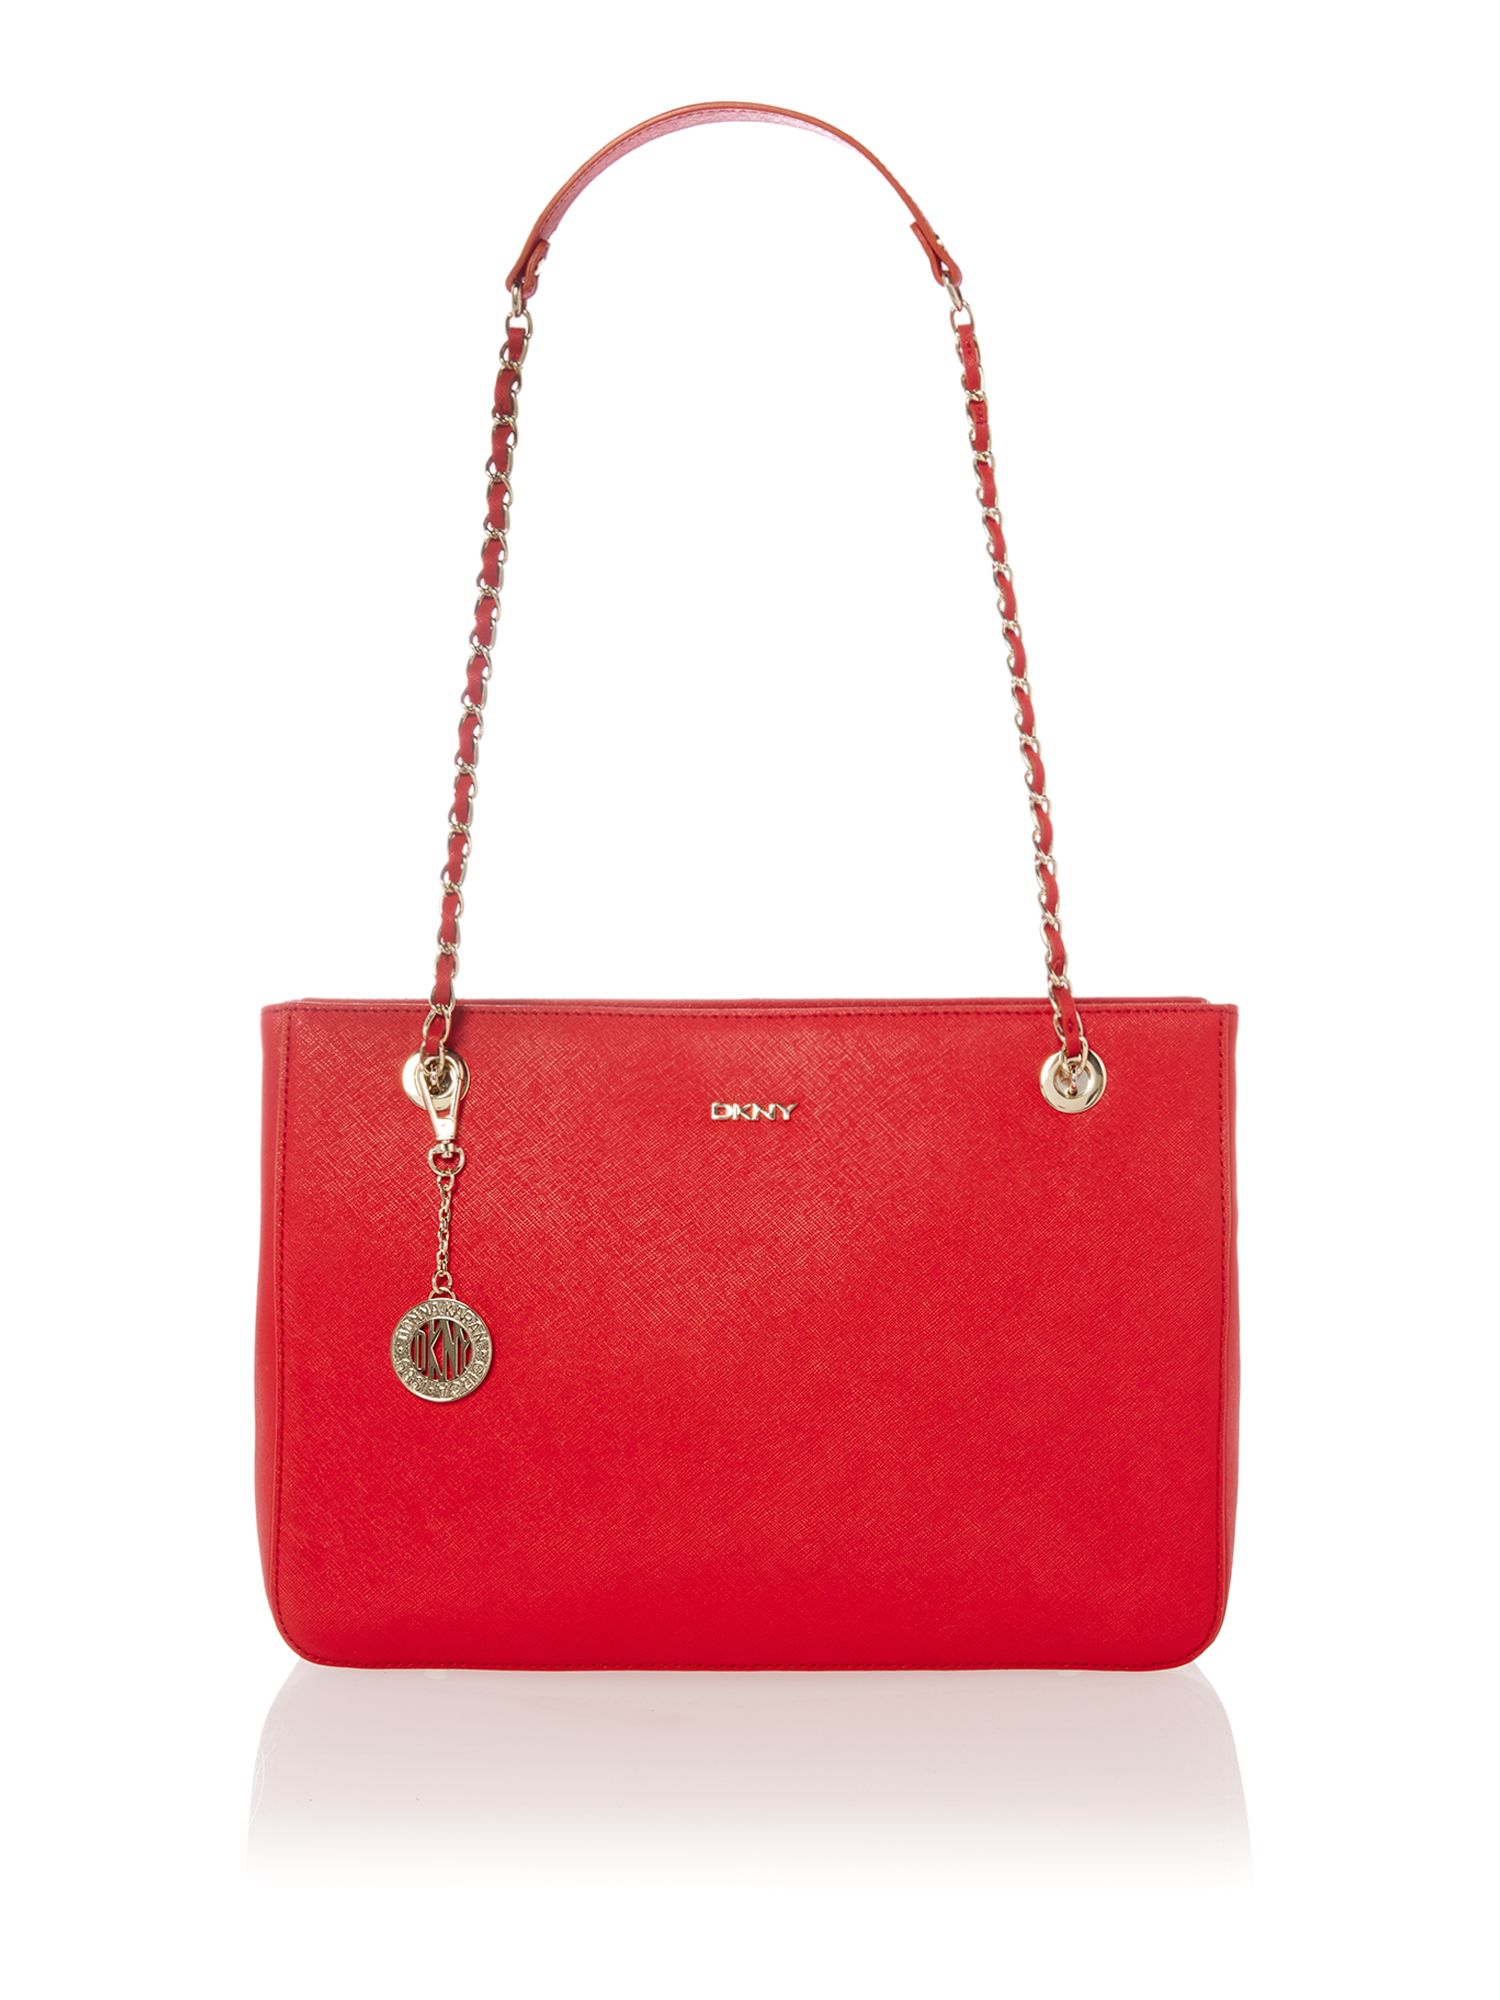 Saffiano red medium chain tote bag